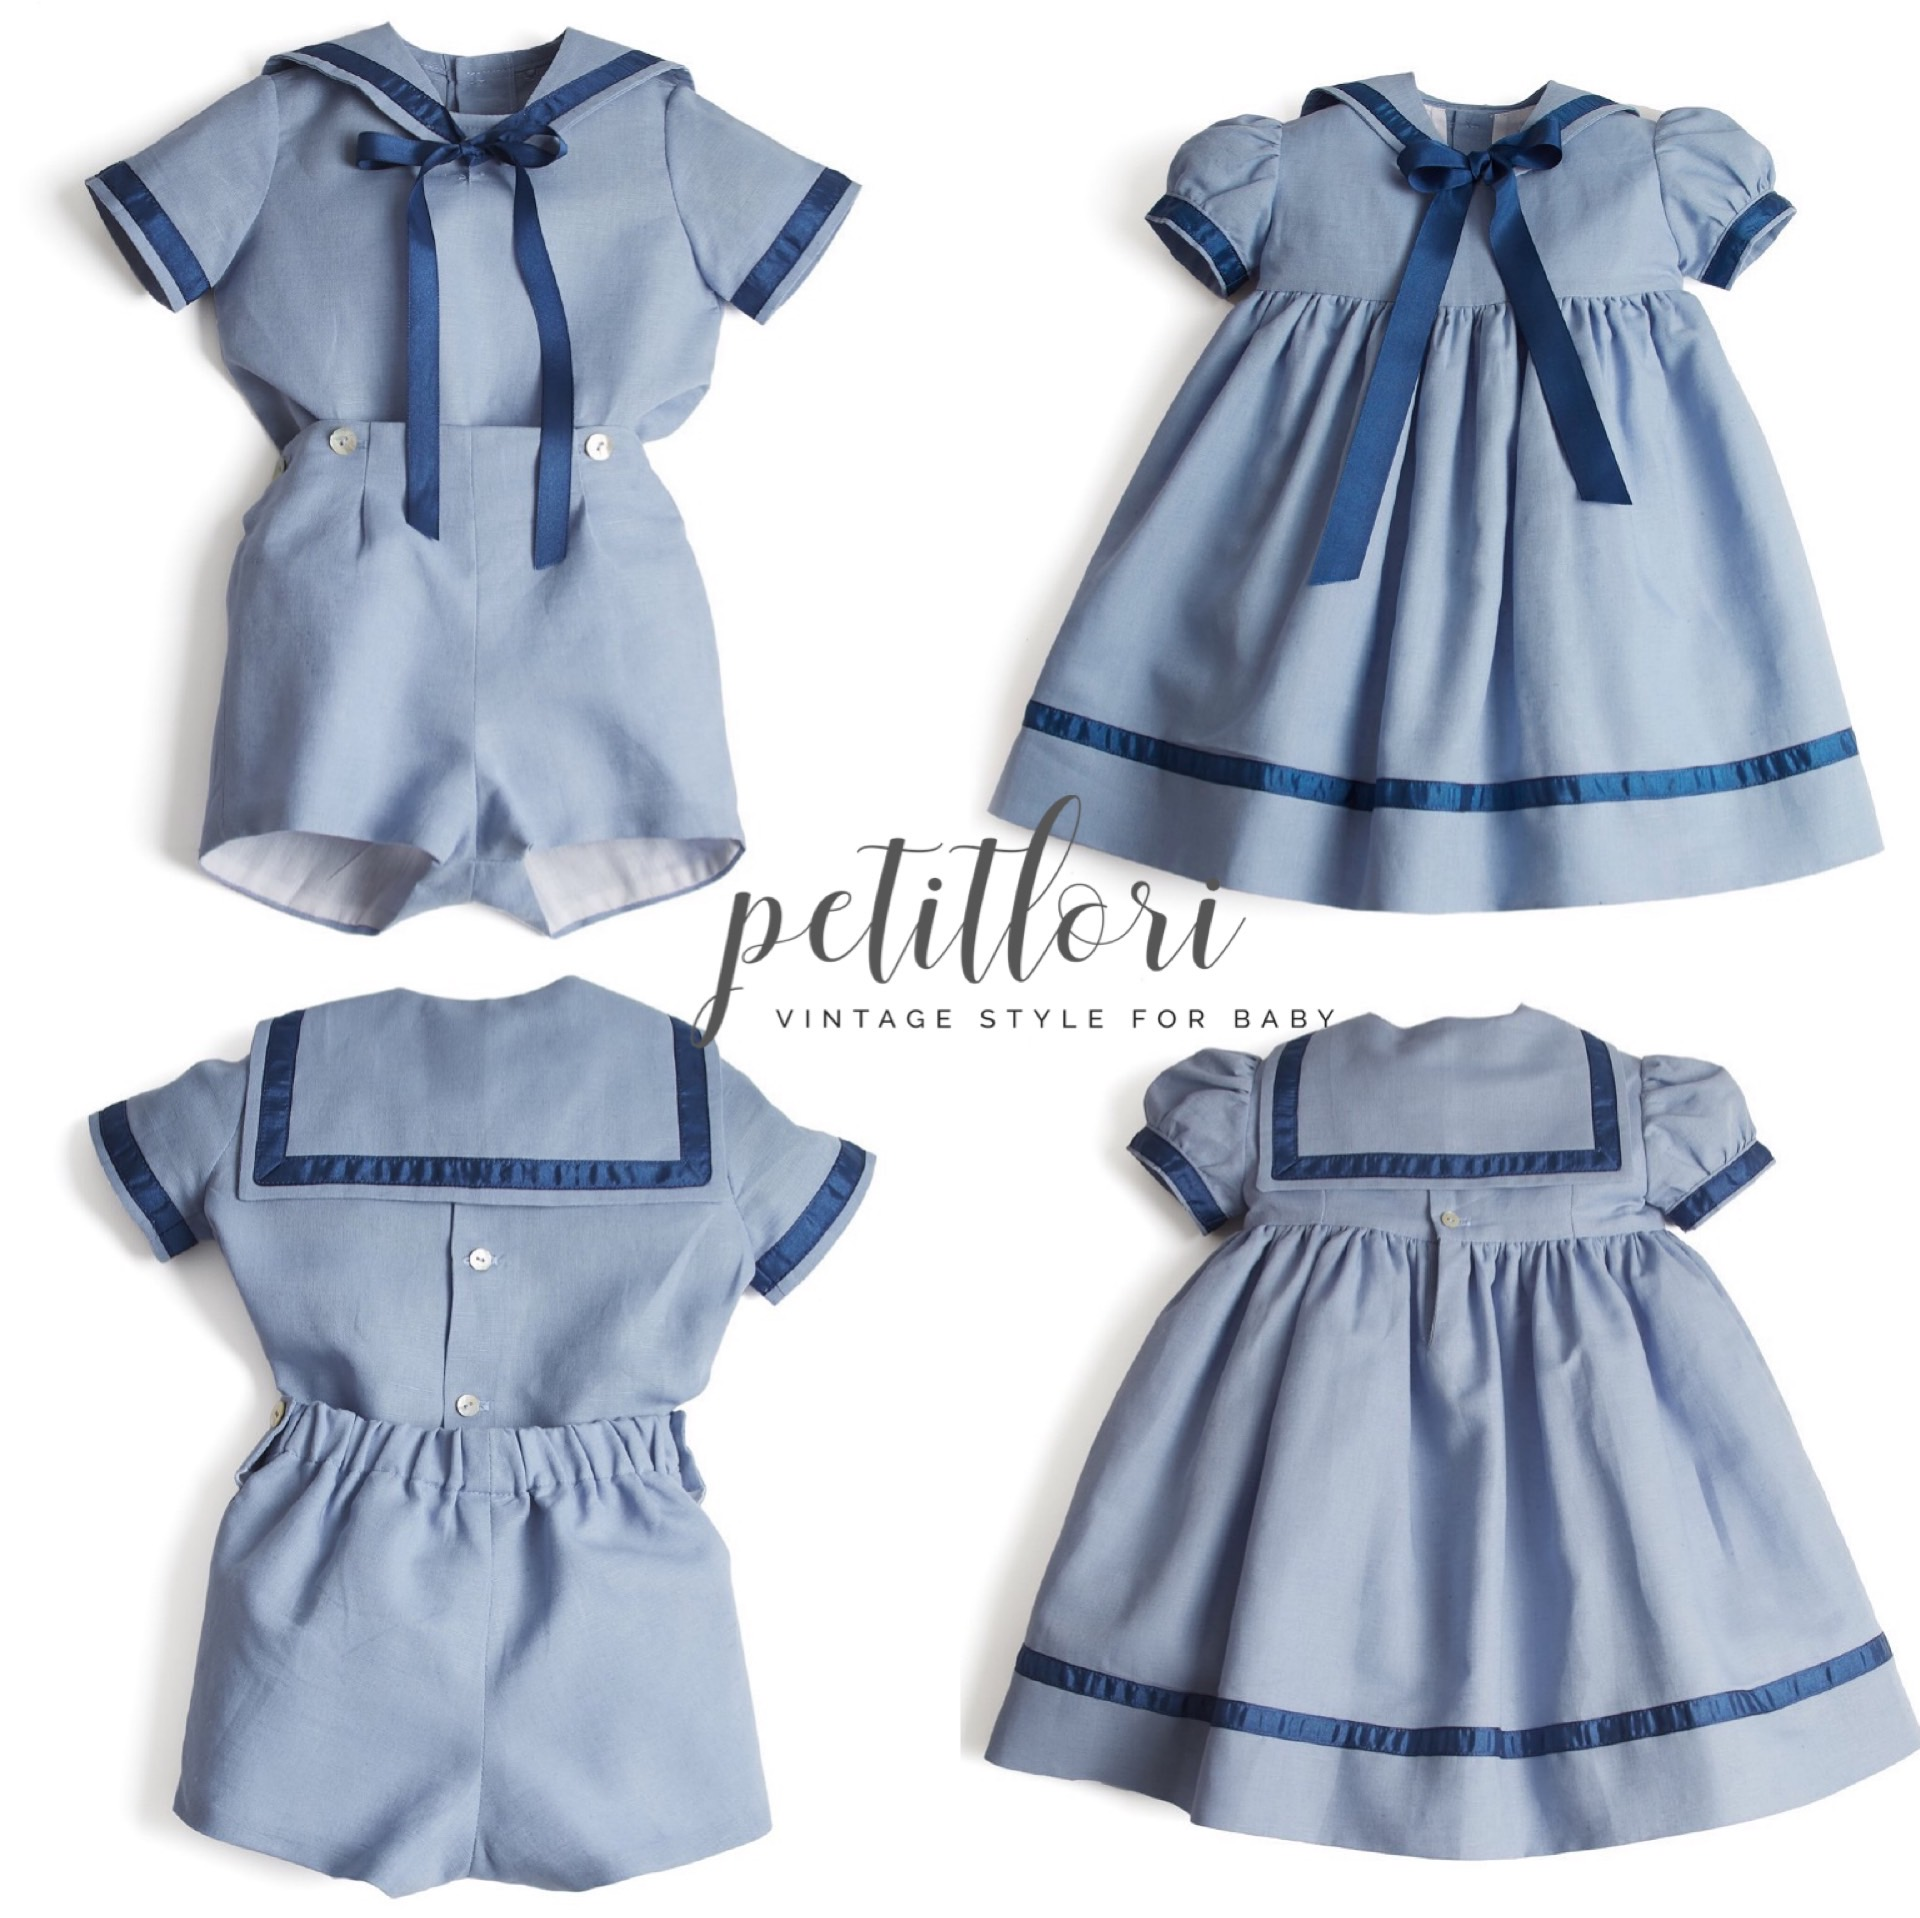 Petitloris self-made Spanish British Navy brother and sister shorts dress childrens suit